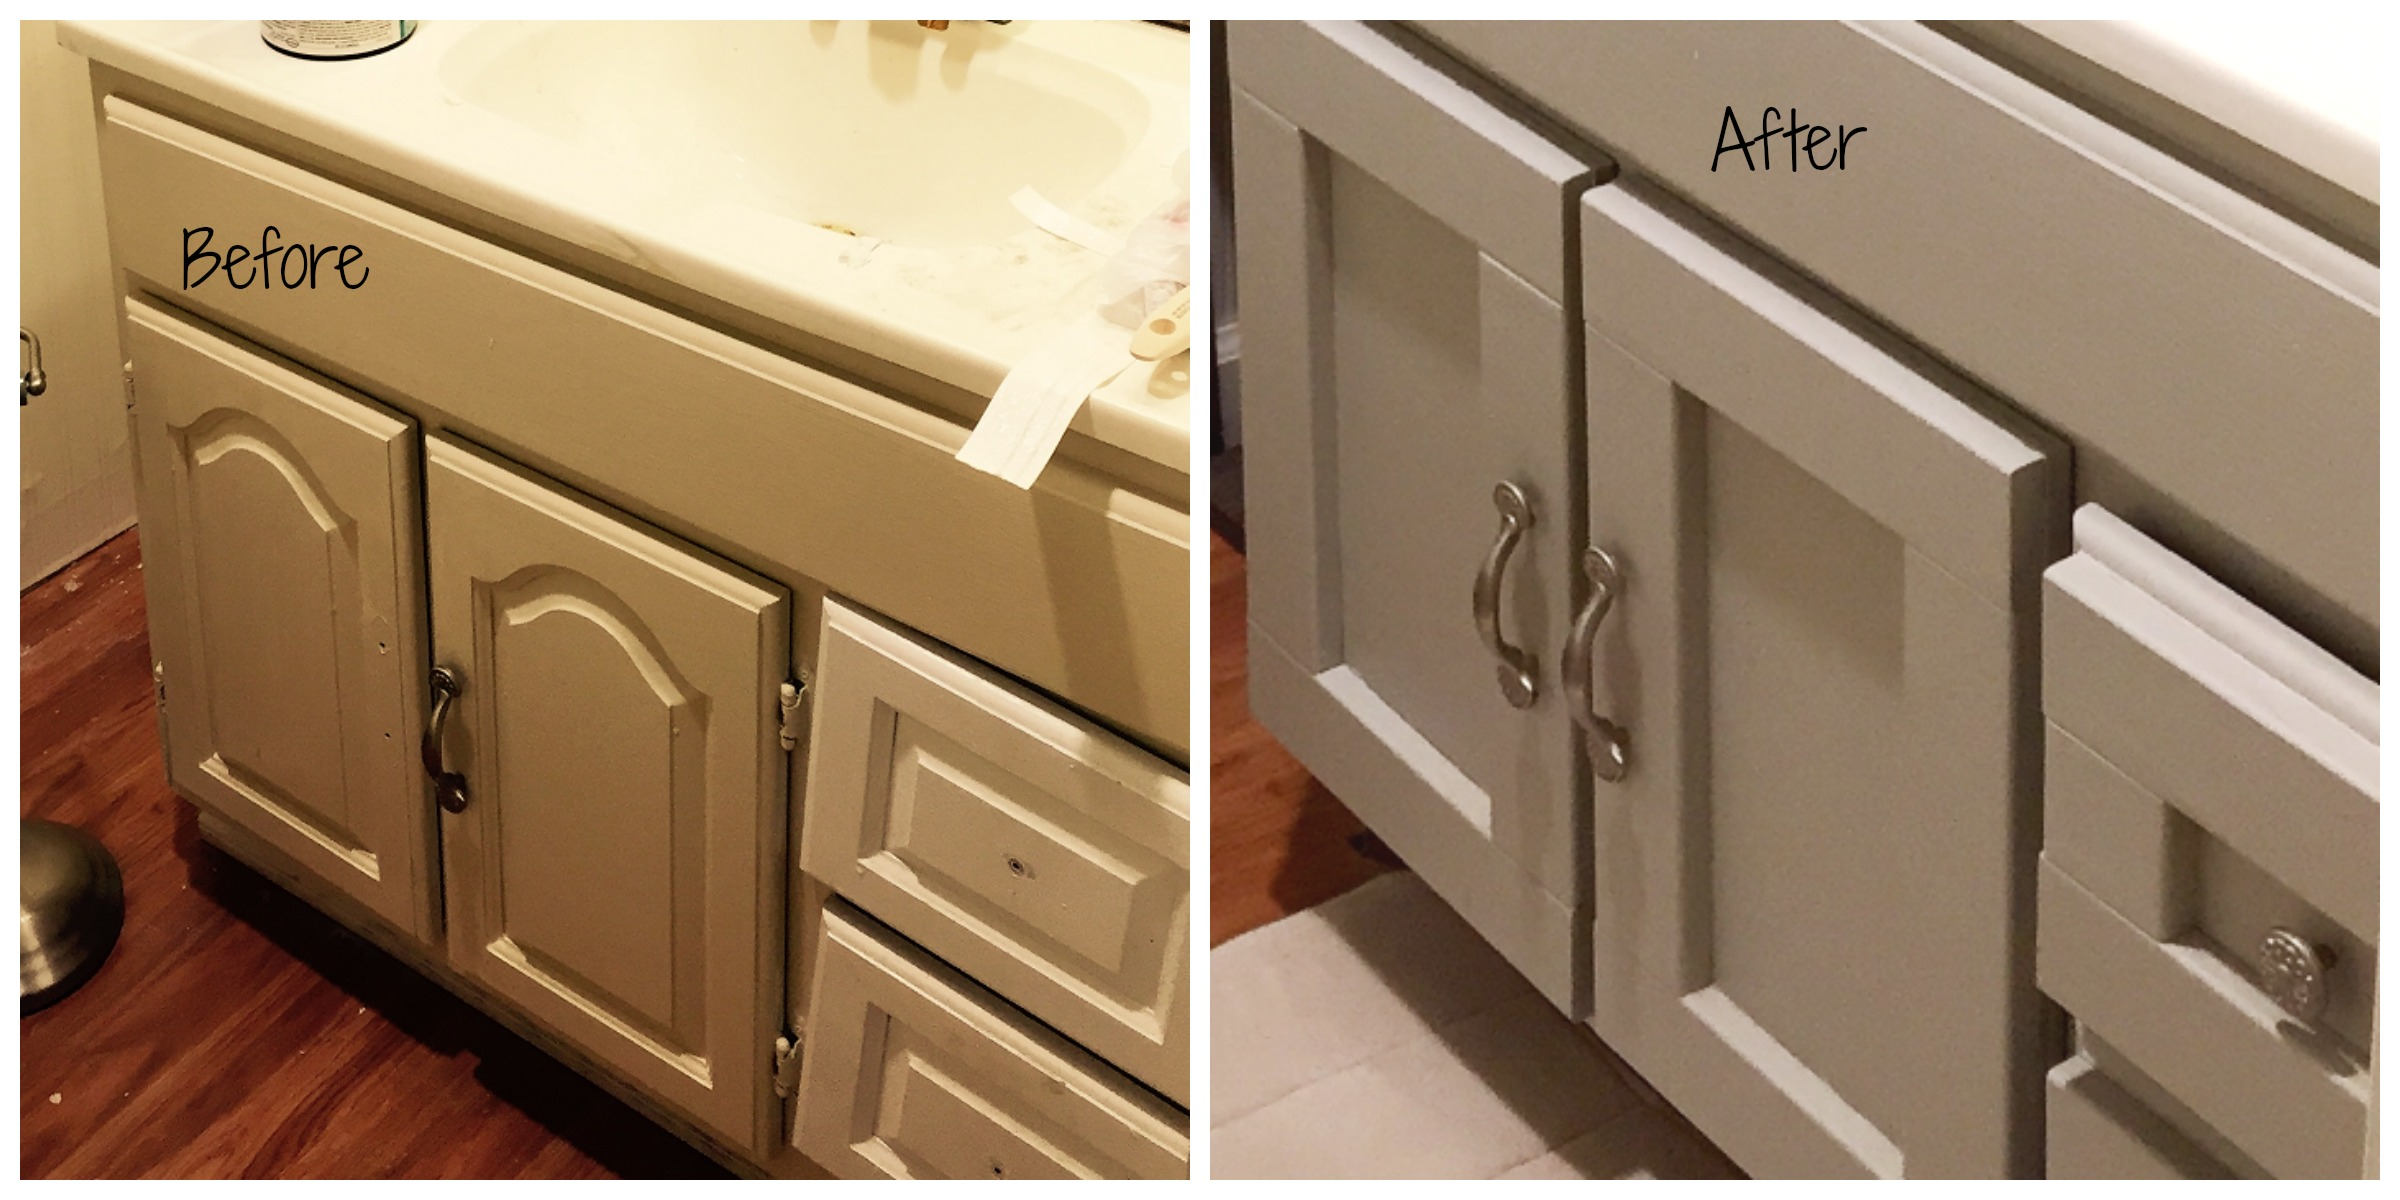 Martha Stewart Laundry Cabinet Splintered Real Renovations Real Restricted Budgets